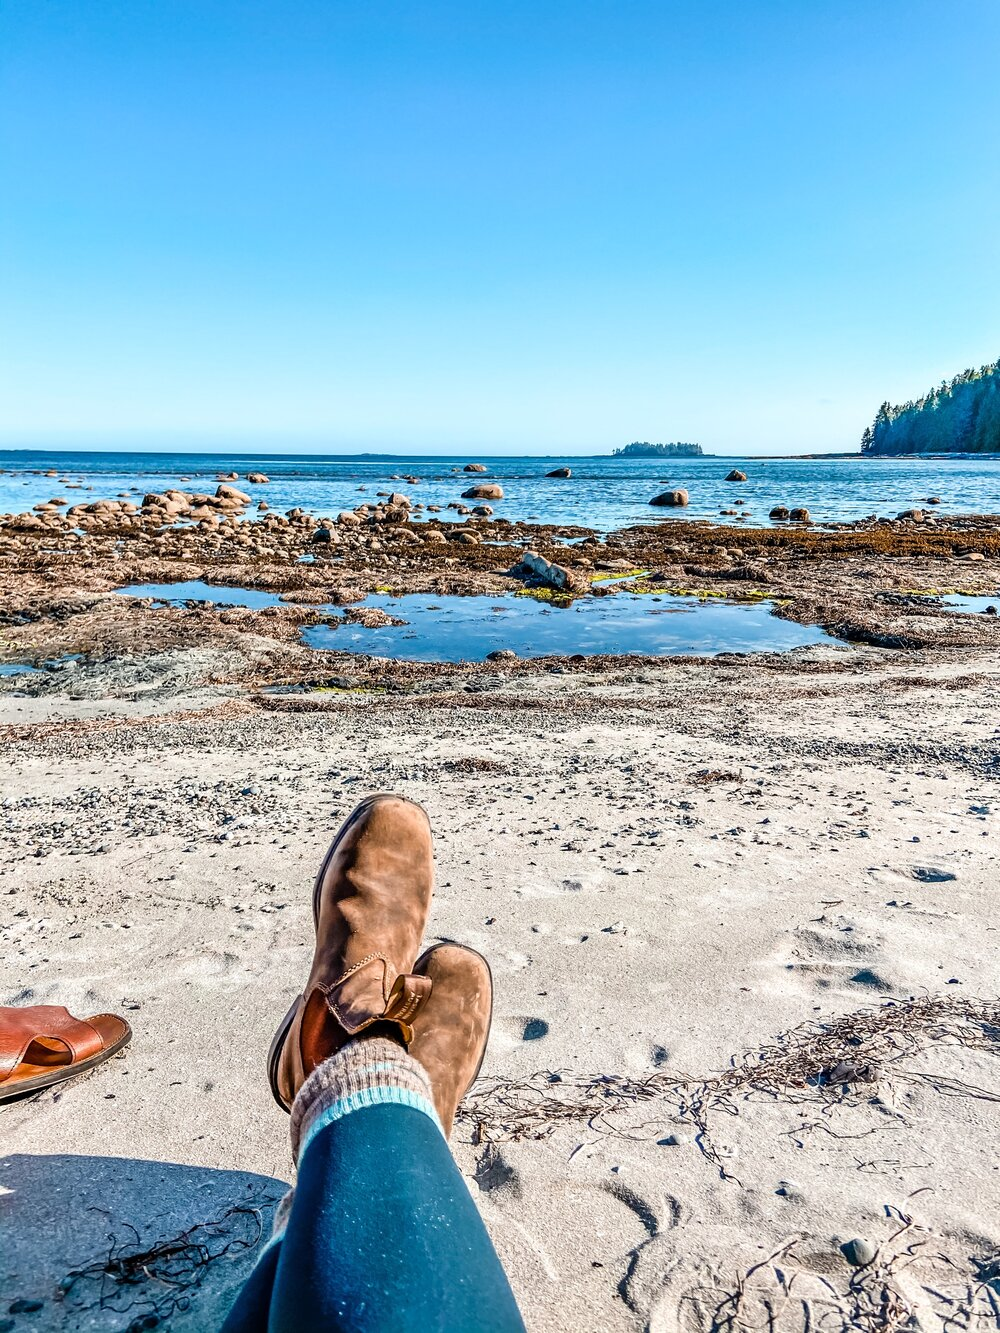 Beach camping in Ucluelet, British Columbia